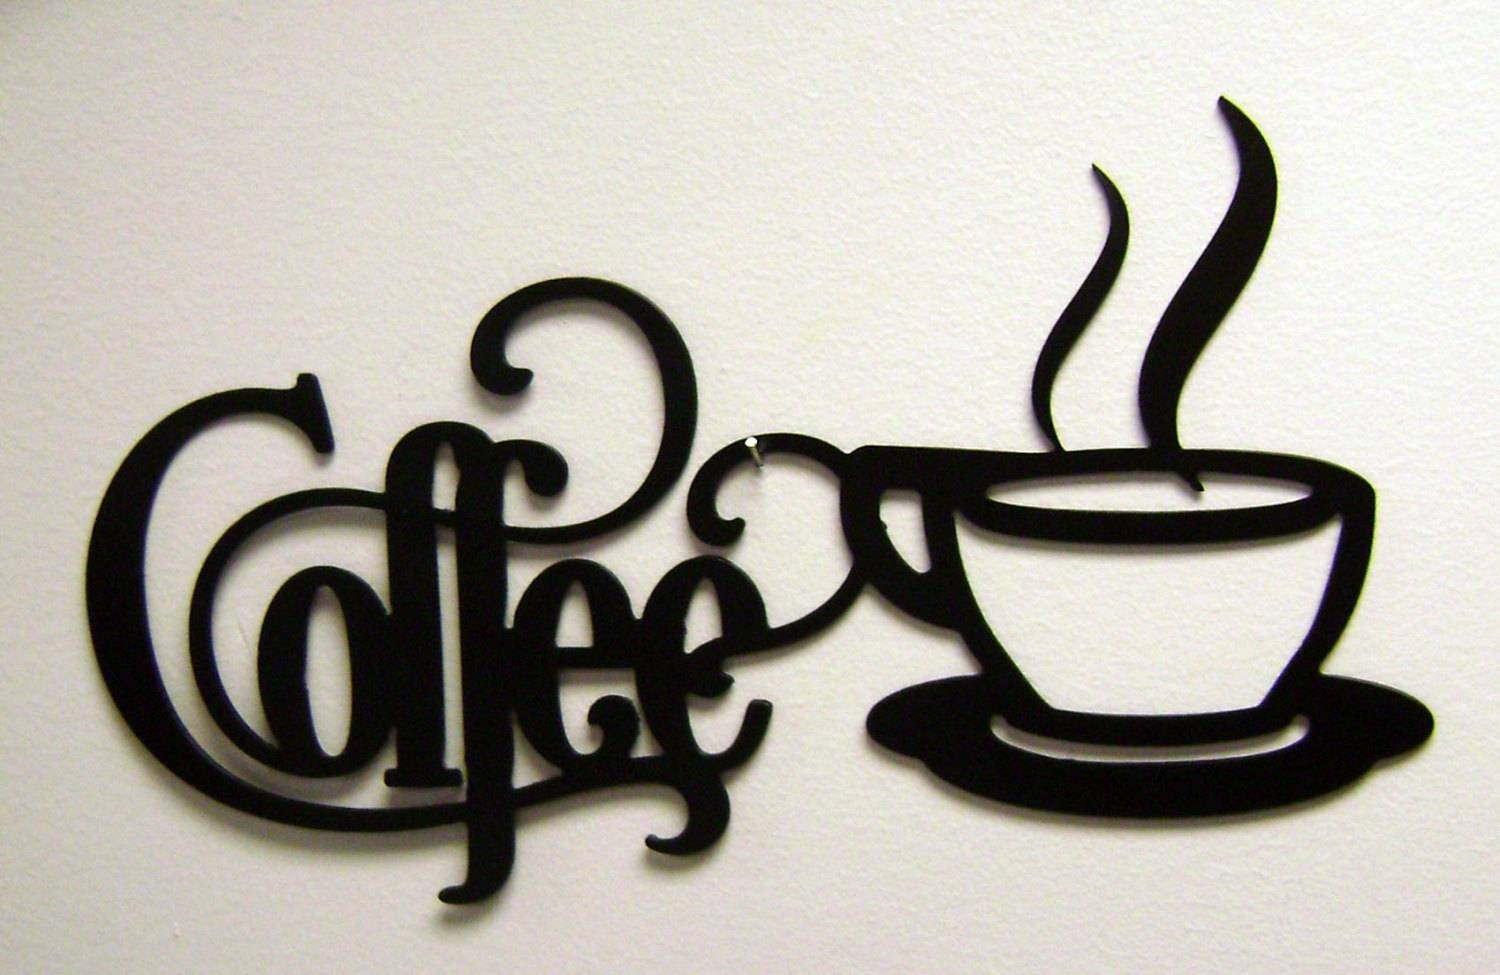 14 X 7 Bistro Coffee Sign With Mug Metal Wall Within Most Current Coffee Metal Wall Art (View 1 of 20)